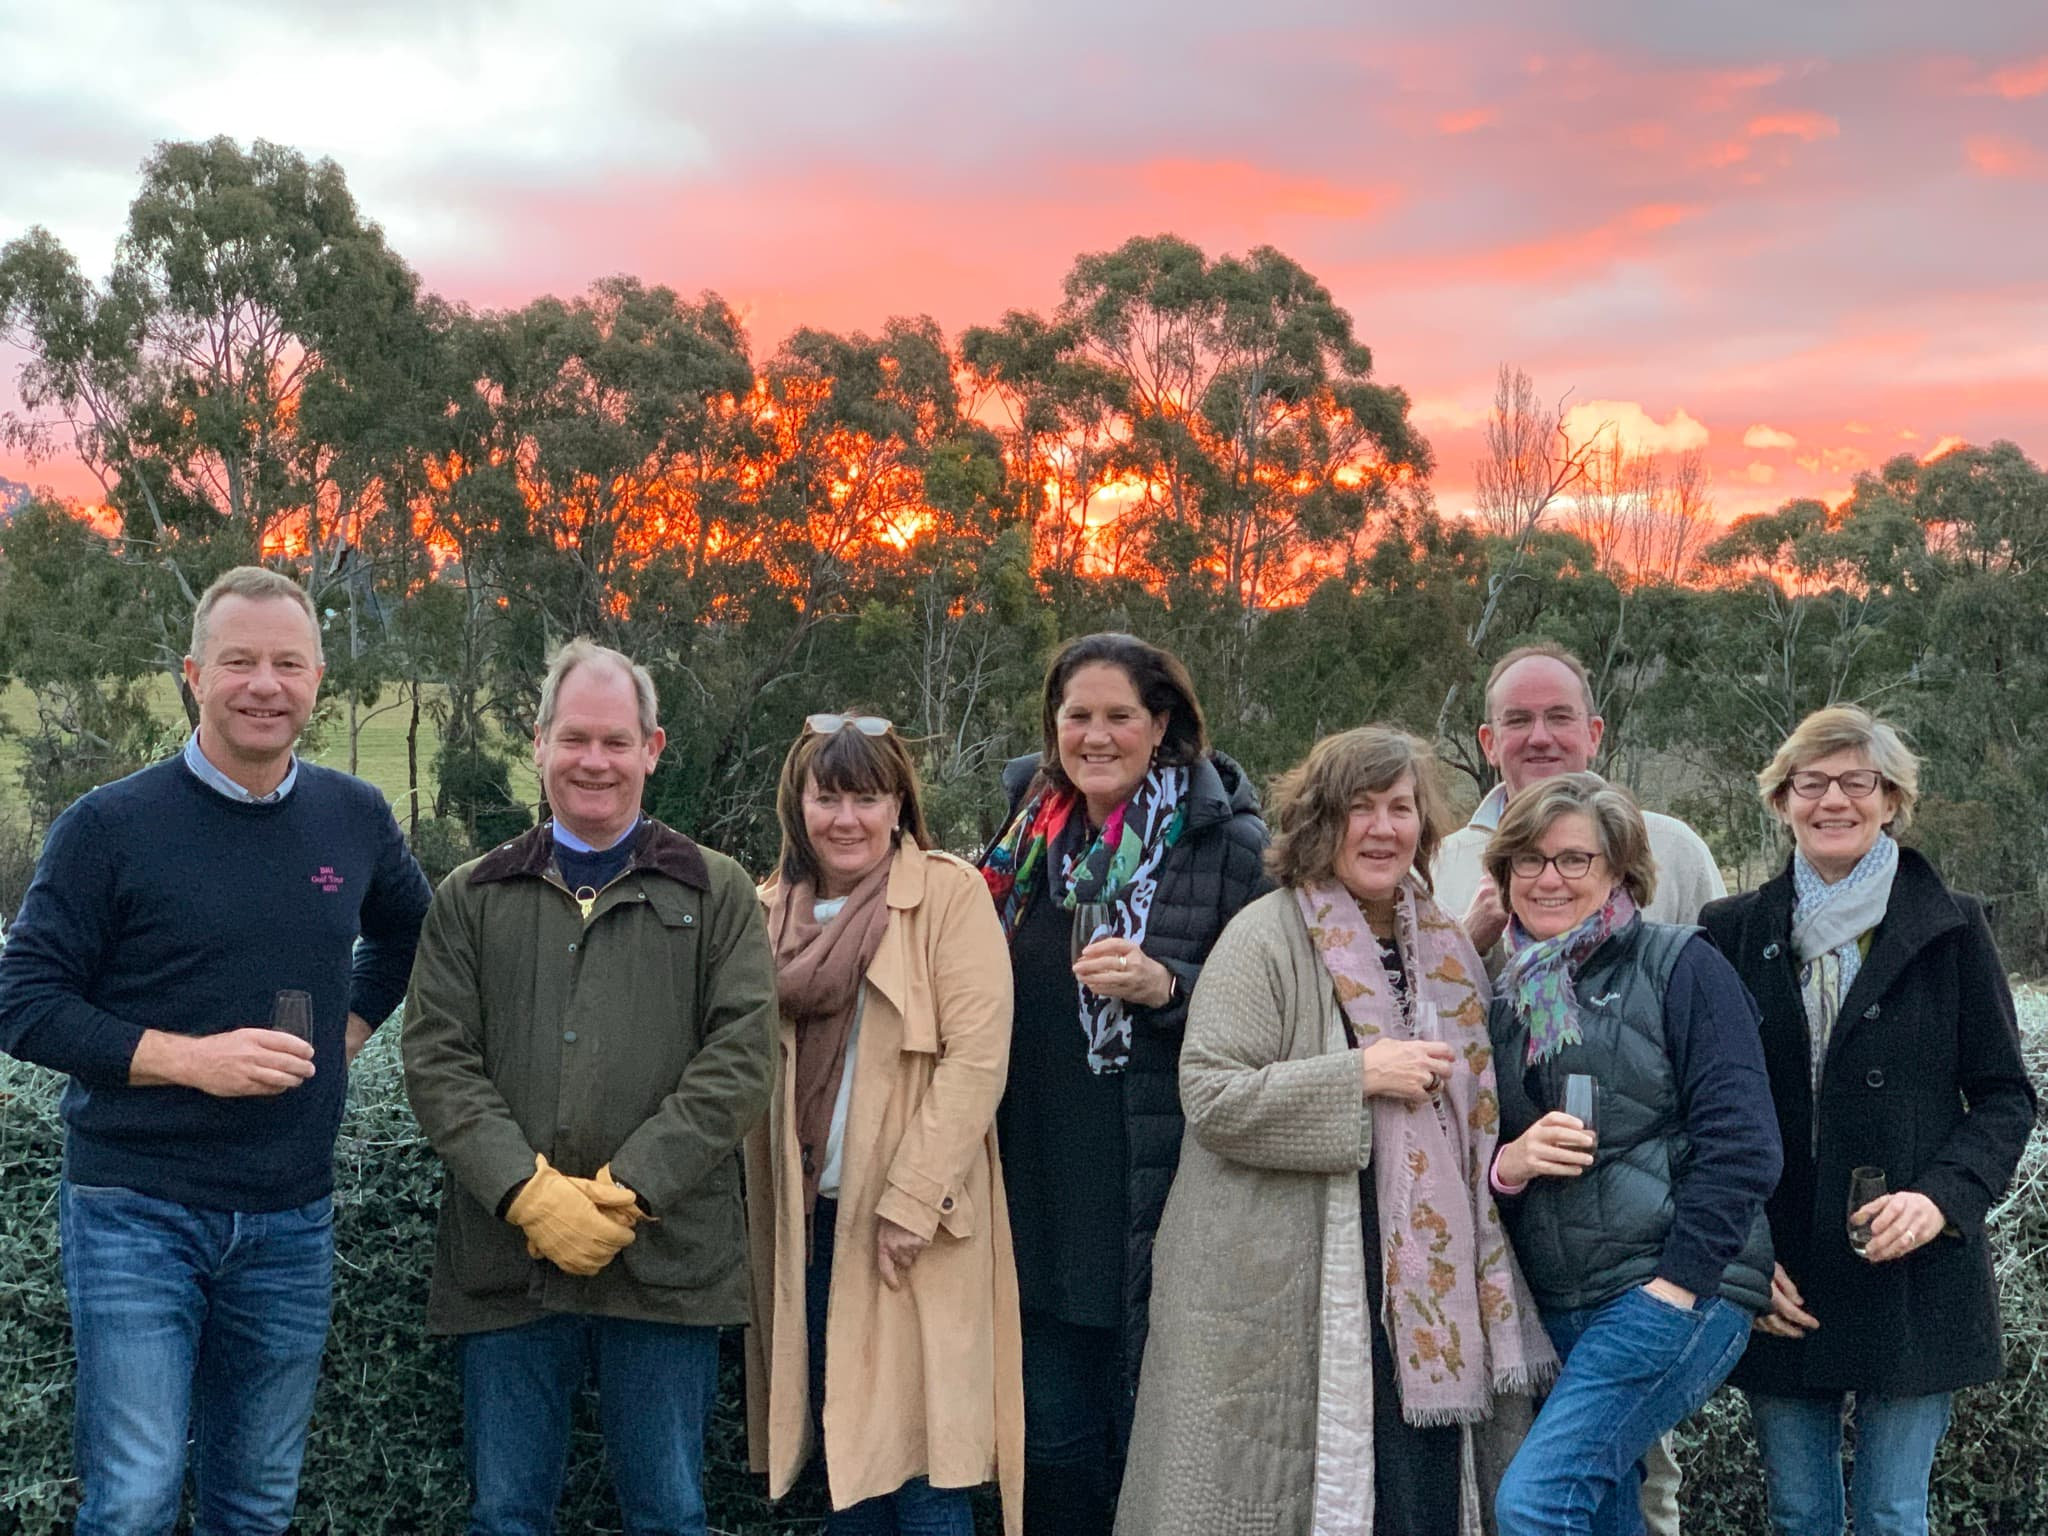 8 people standing in front of sunset